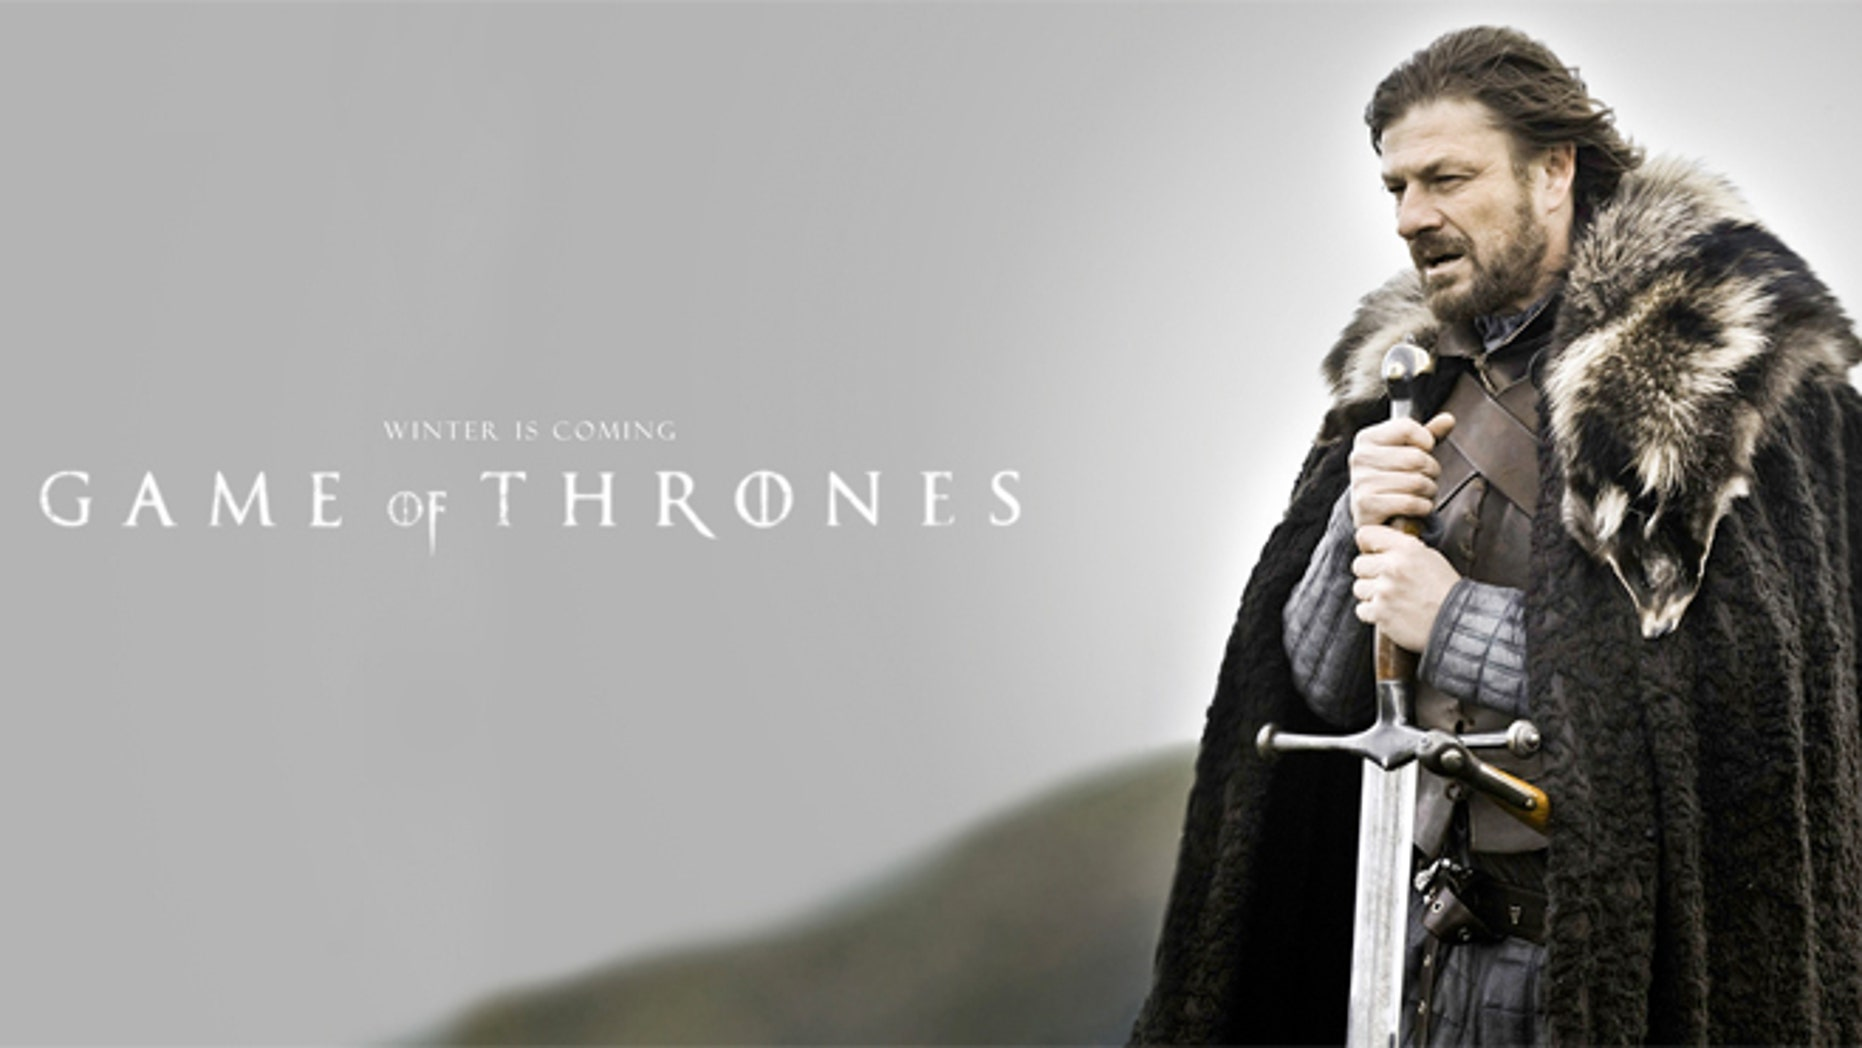 HBO will team up with Brewery Ommegang to create beers based on the hit series Game of Thrones.